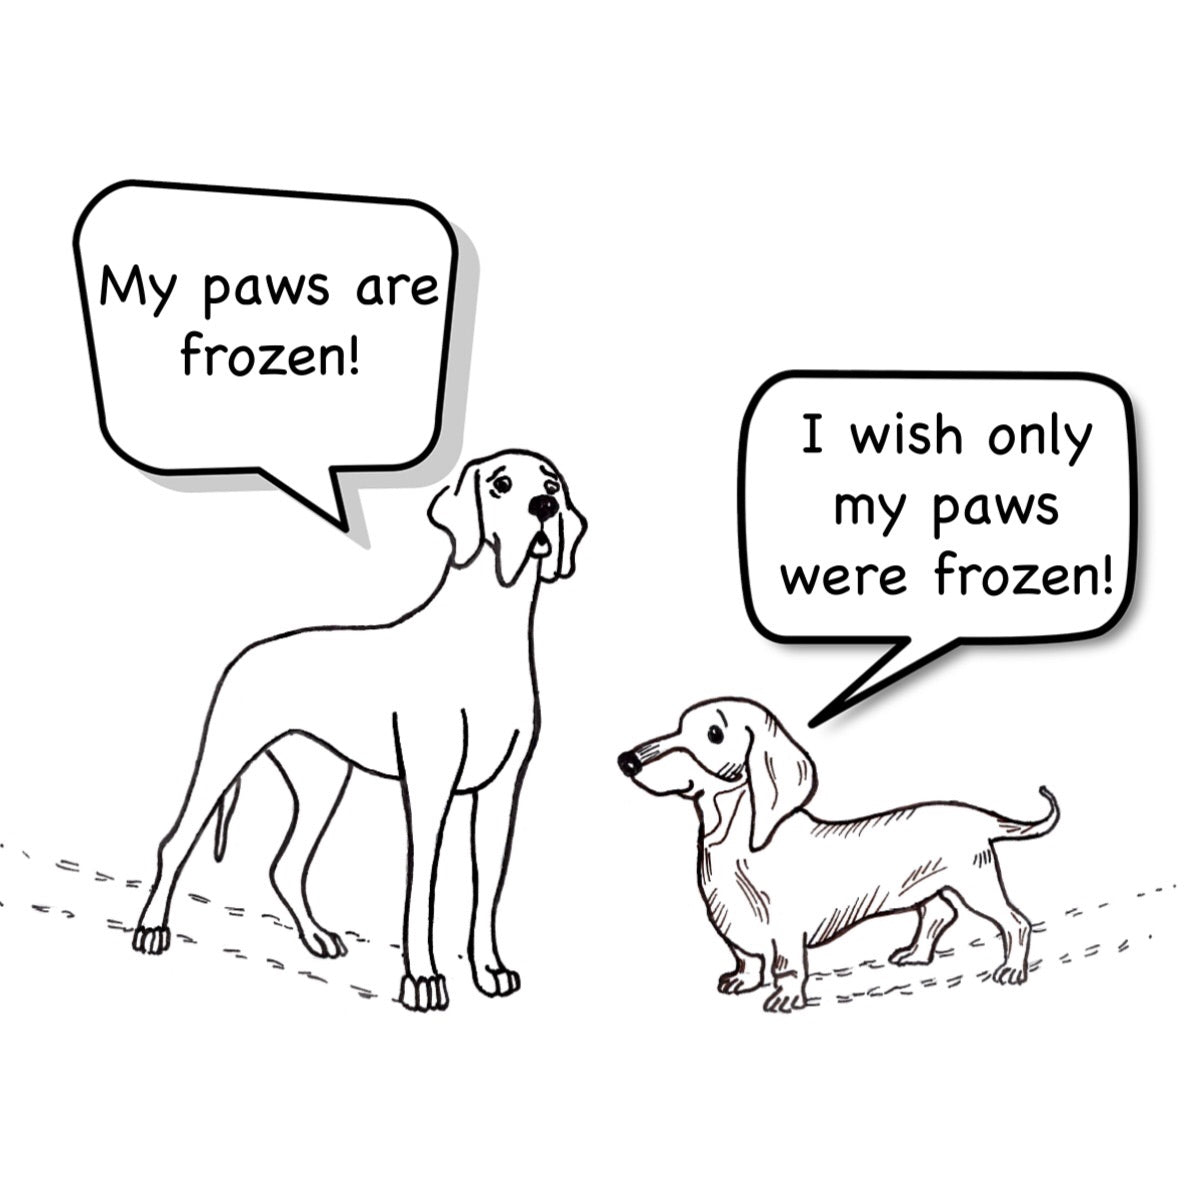 Freezy paws! - Merry Christmas Greeting Card